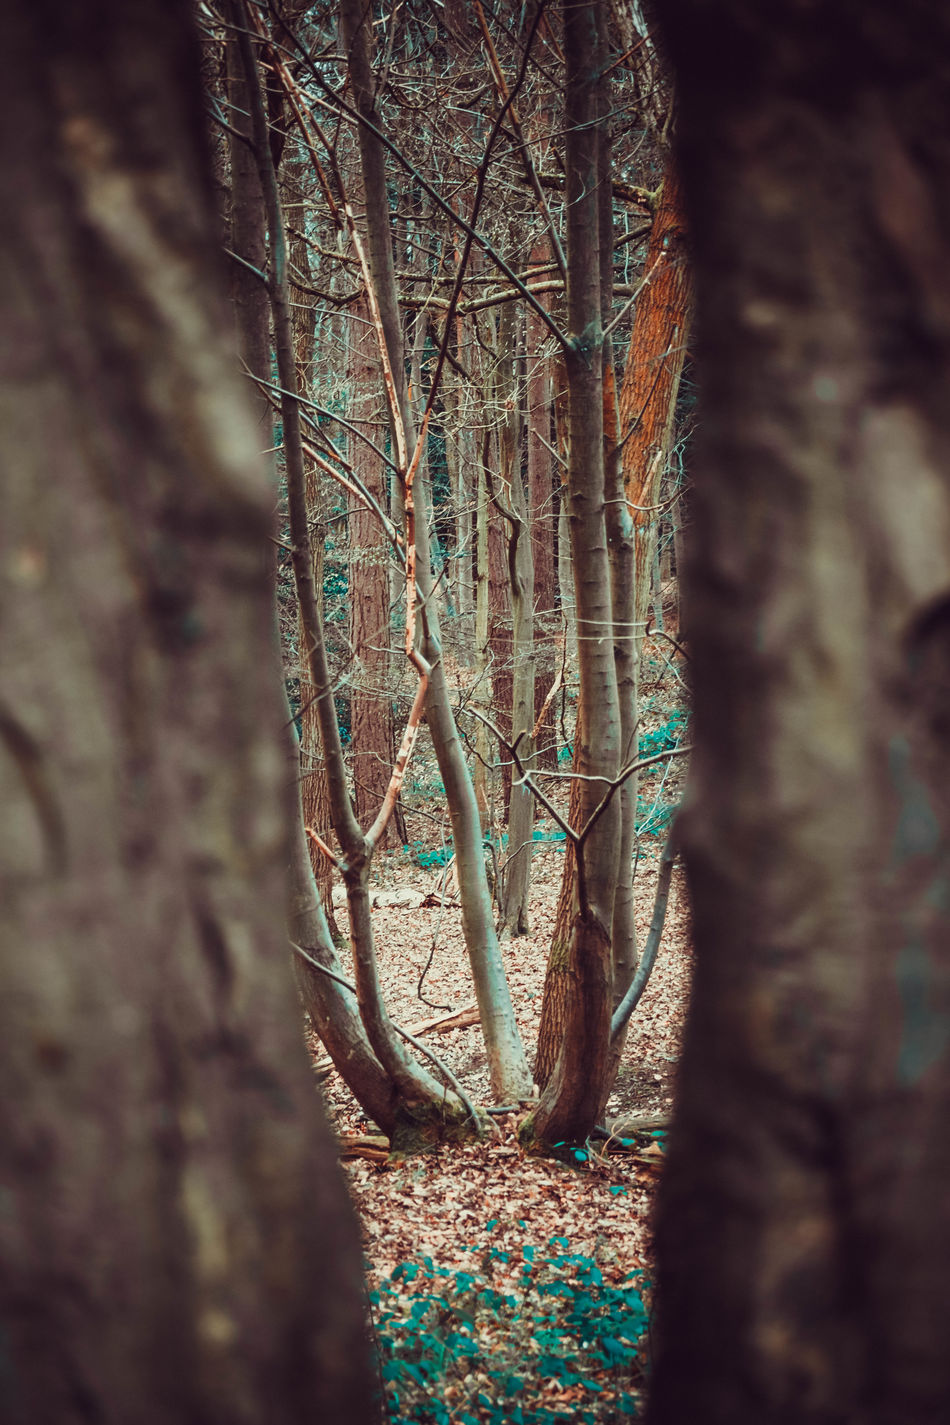 Beauty In Nature Branch Close-up Day Forest Growth Looking Through The Trees Lots Of Leaves Nature No People Outdoors Plant Tranquility Tree Tree Trunk Trees Vibrant Color Walk In The Forest Walk In The Woods WoodLand Narrow Viewpoint TCPM